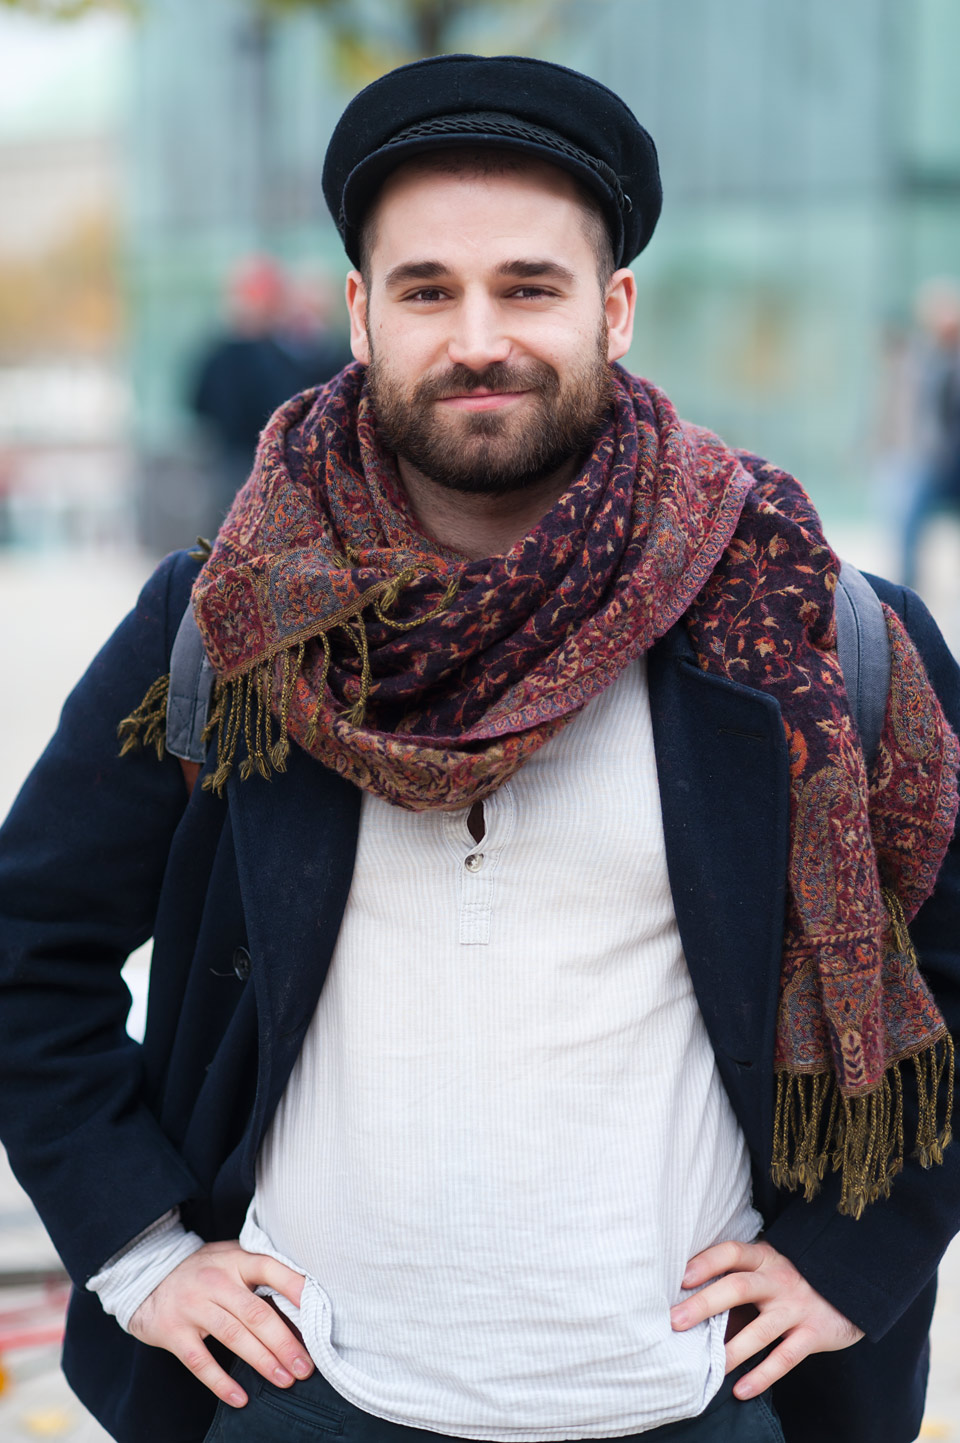 khaled_nah.jungfernstieg_hamburg.fashionjunk_streetstyle_fashion_blog